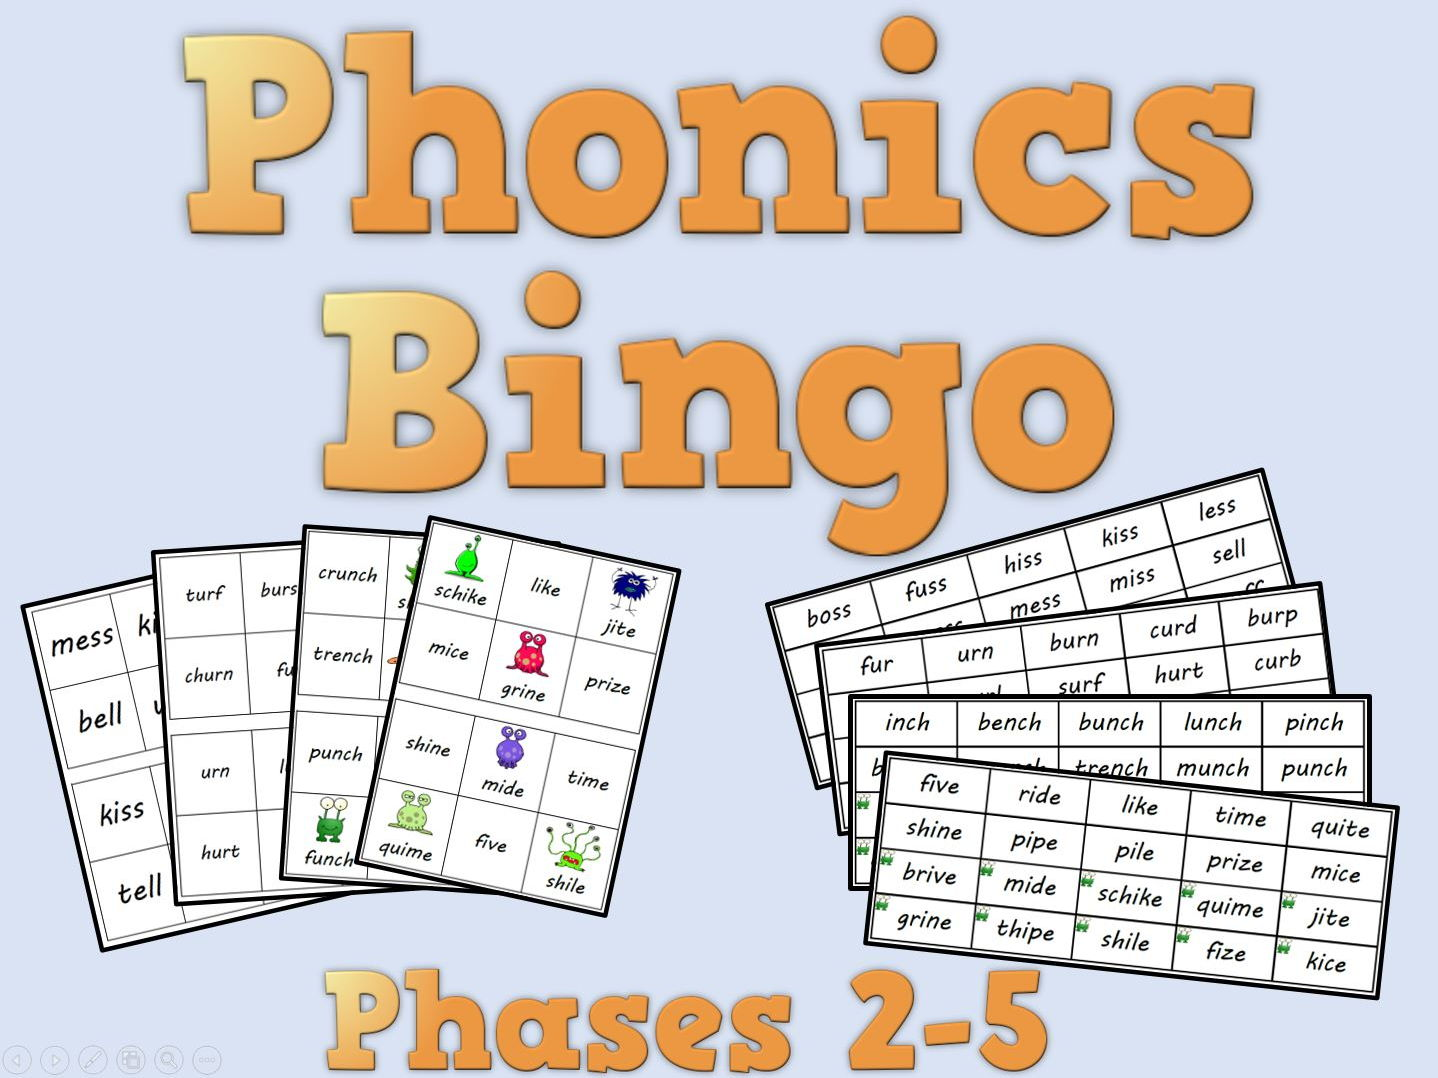 phonics bingo  u2013 phases 2